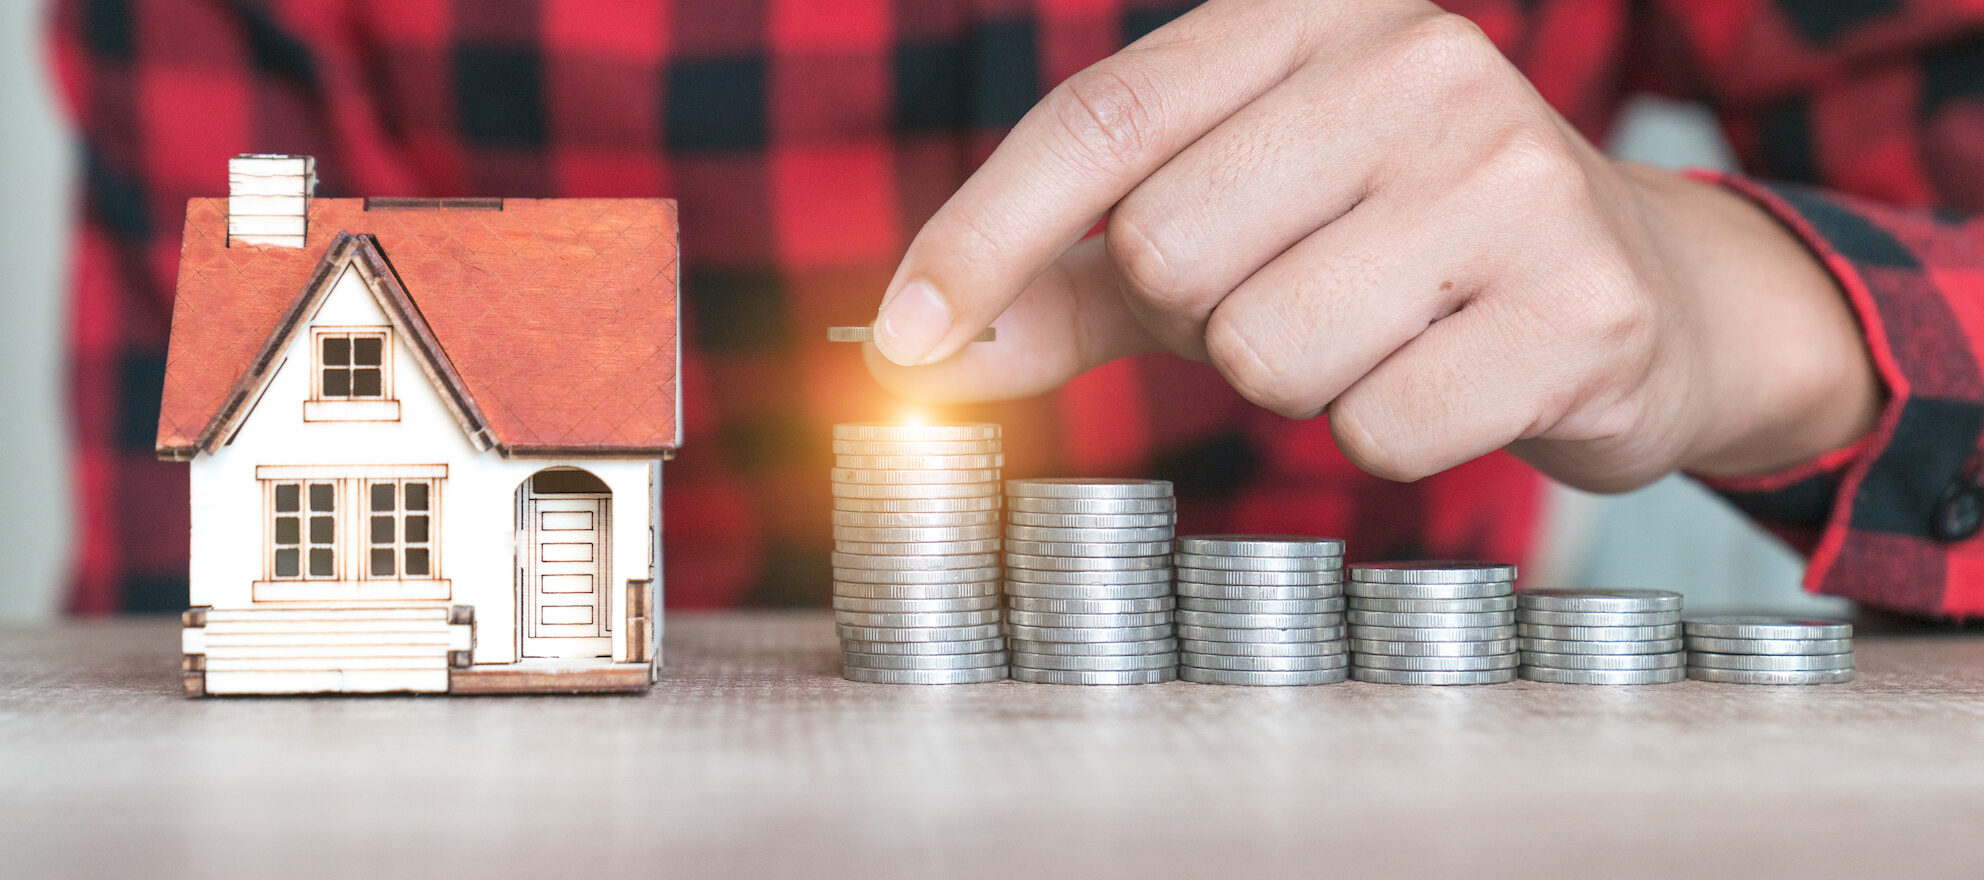 Home price gains remain solid in August: Case-Shiller